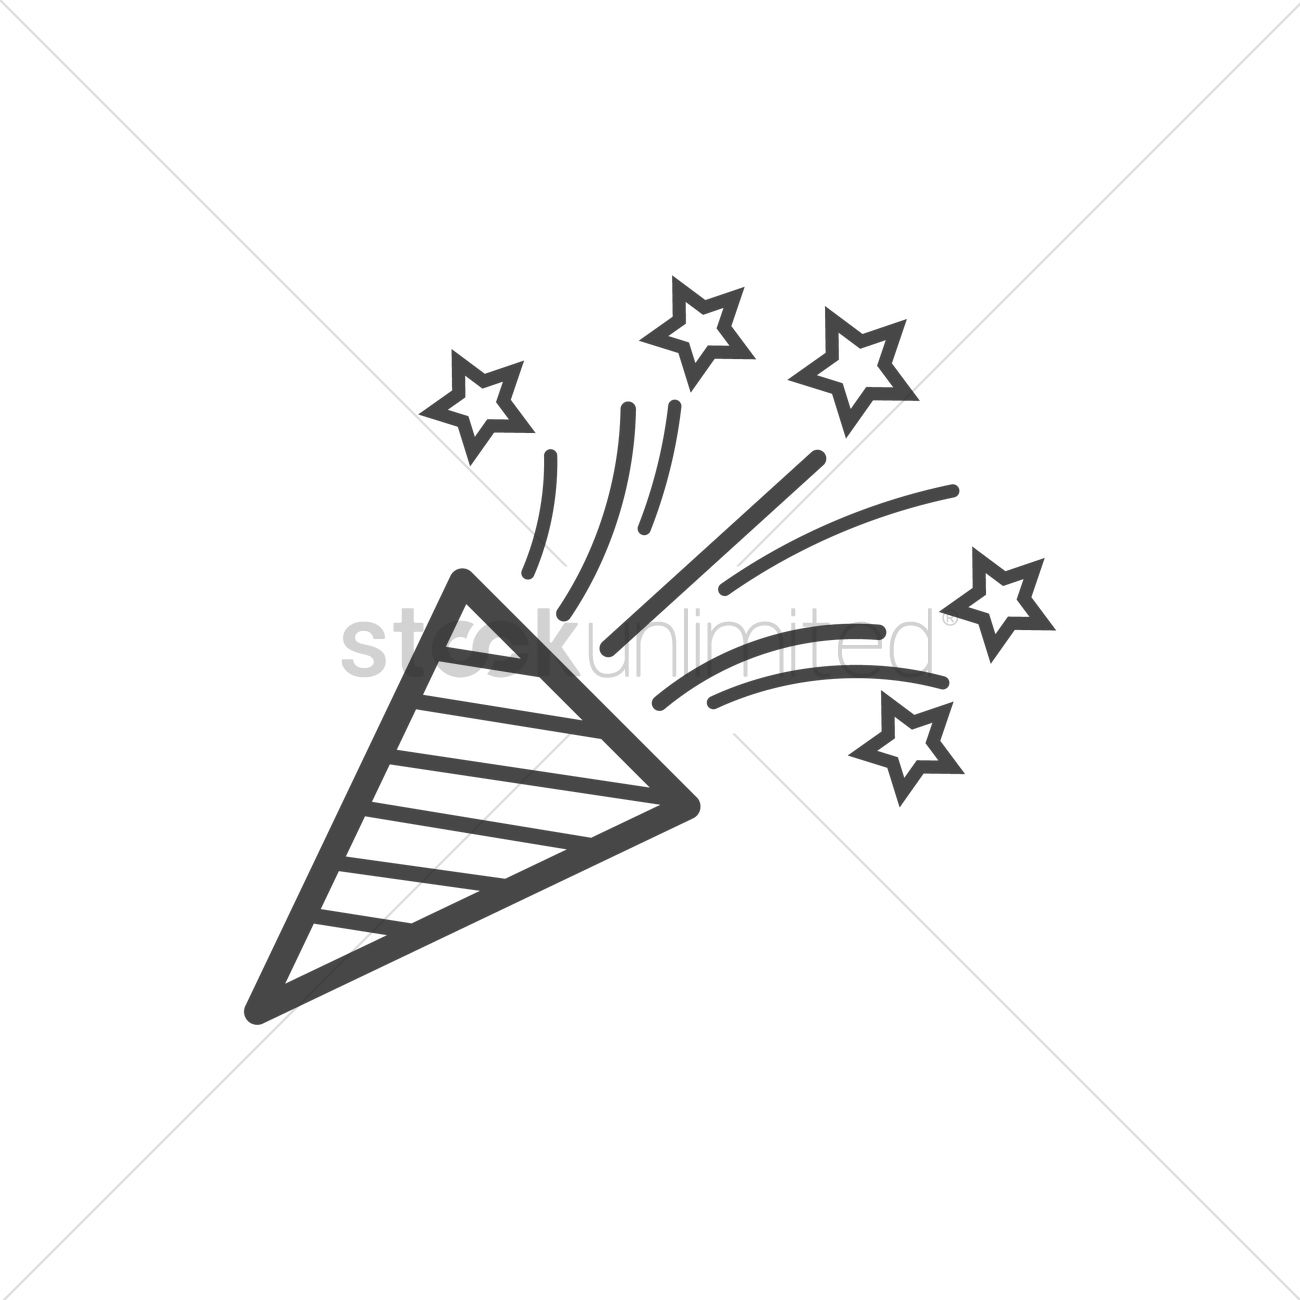 Party clipart icon graphic transparent library Free Party Clipart icon, Download Free Clip Art on Owips.com graphic transparent library